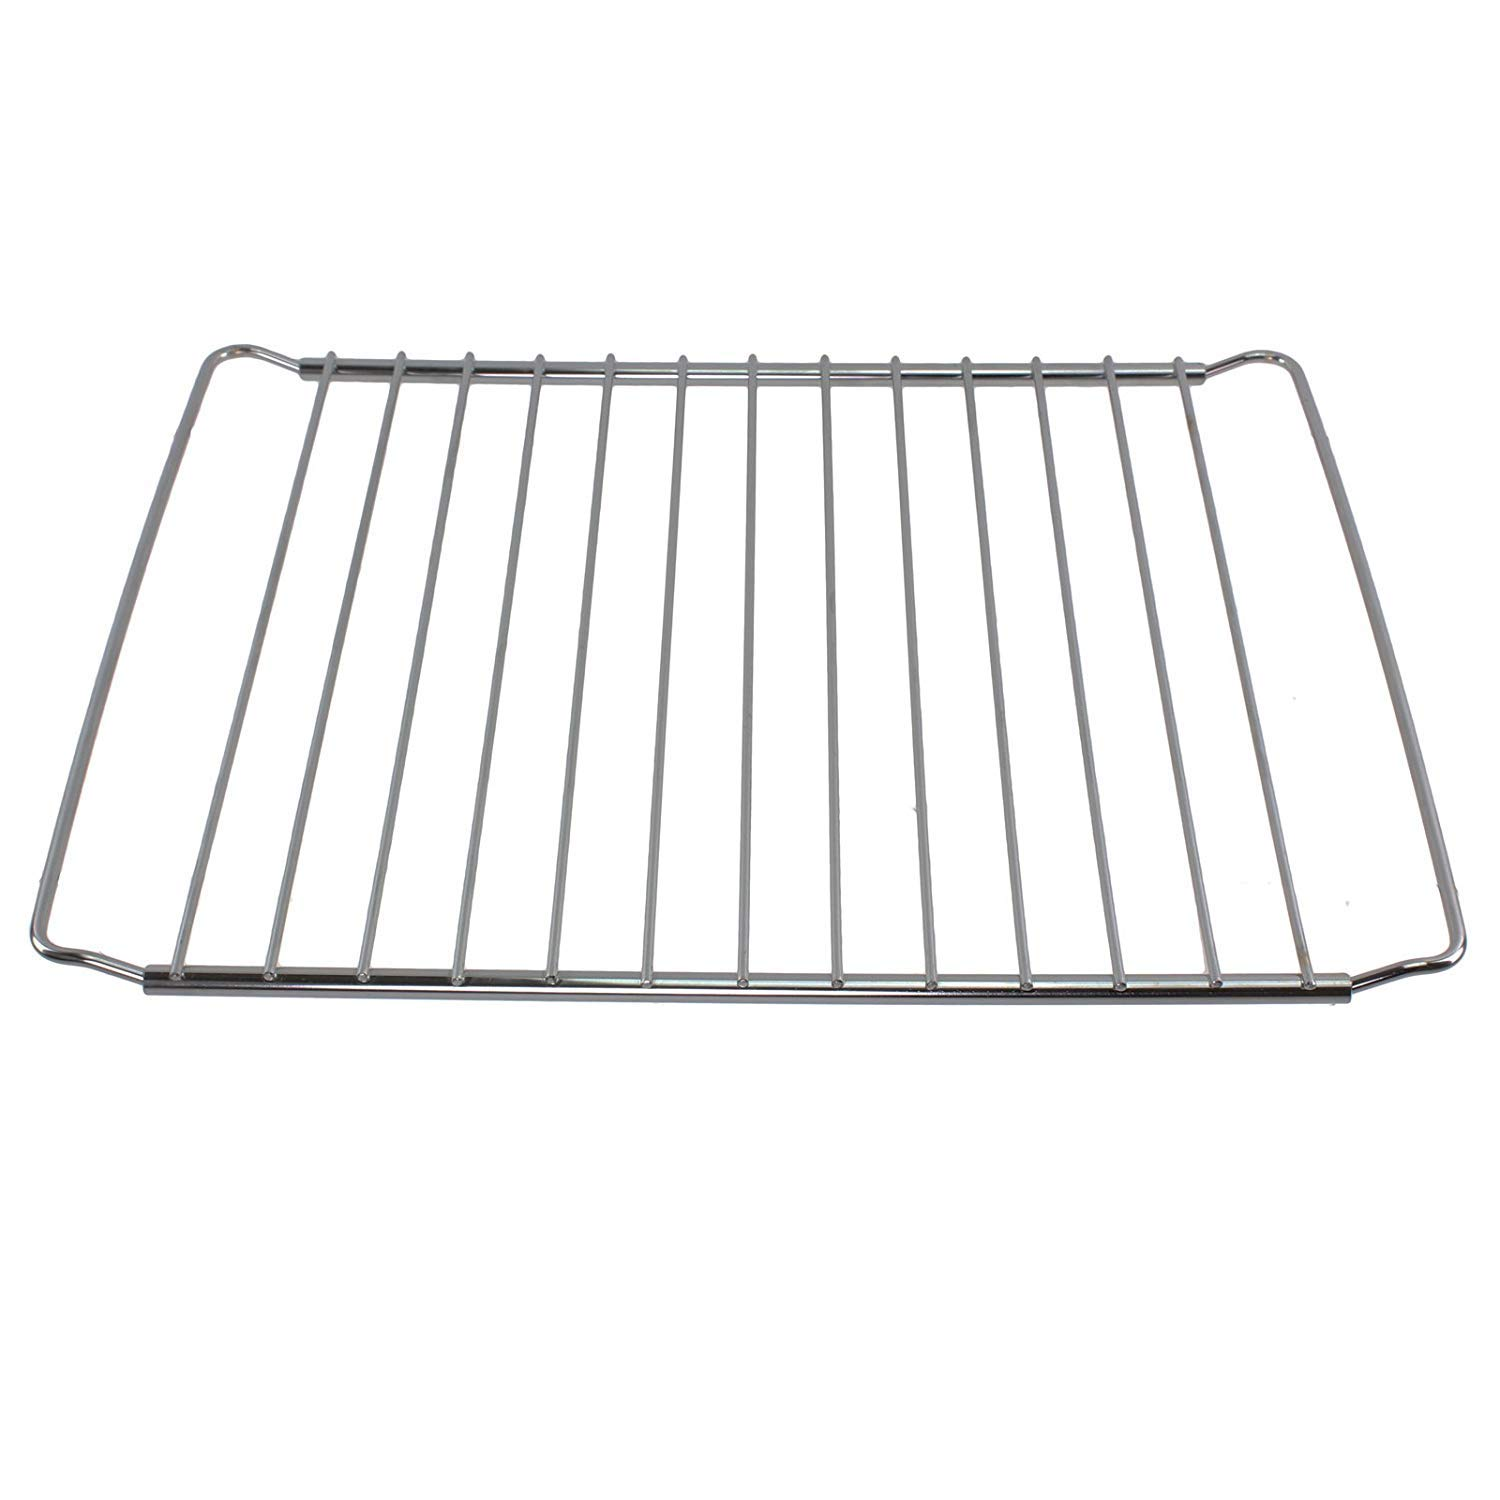 SPARES2GO Extendable Width Stainless Steel Shelf For Lamona Oven Cooker (310 x 345-565mm)